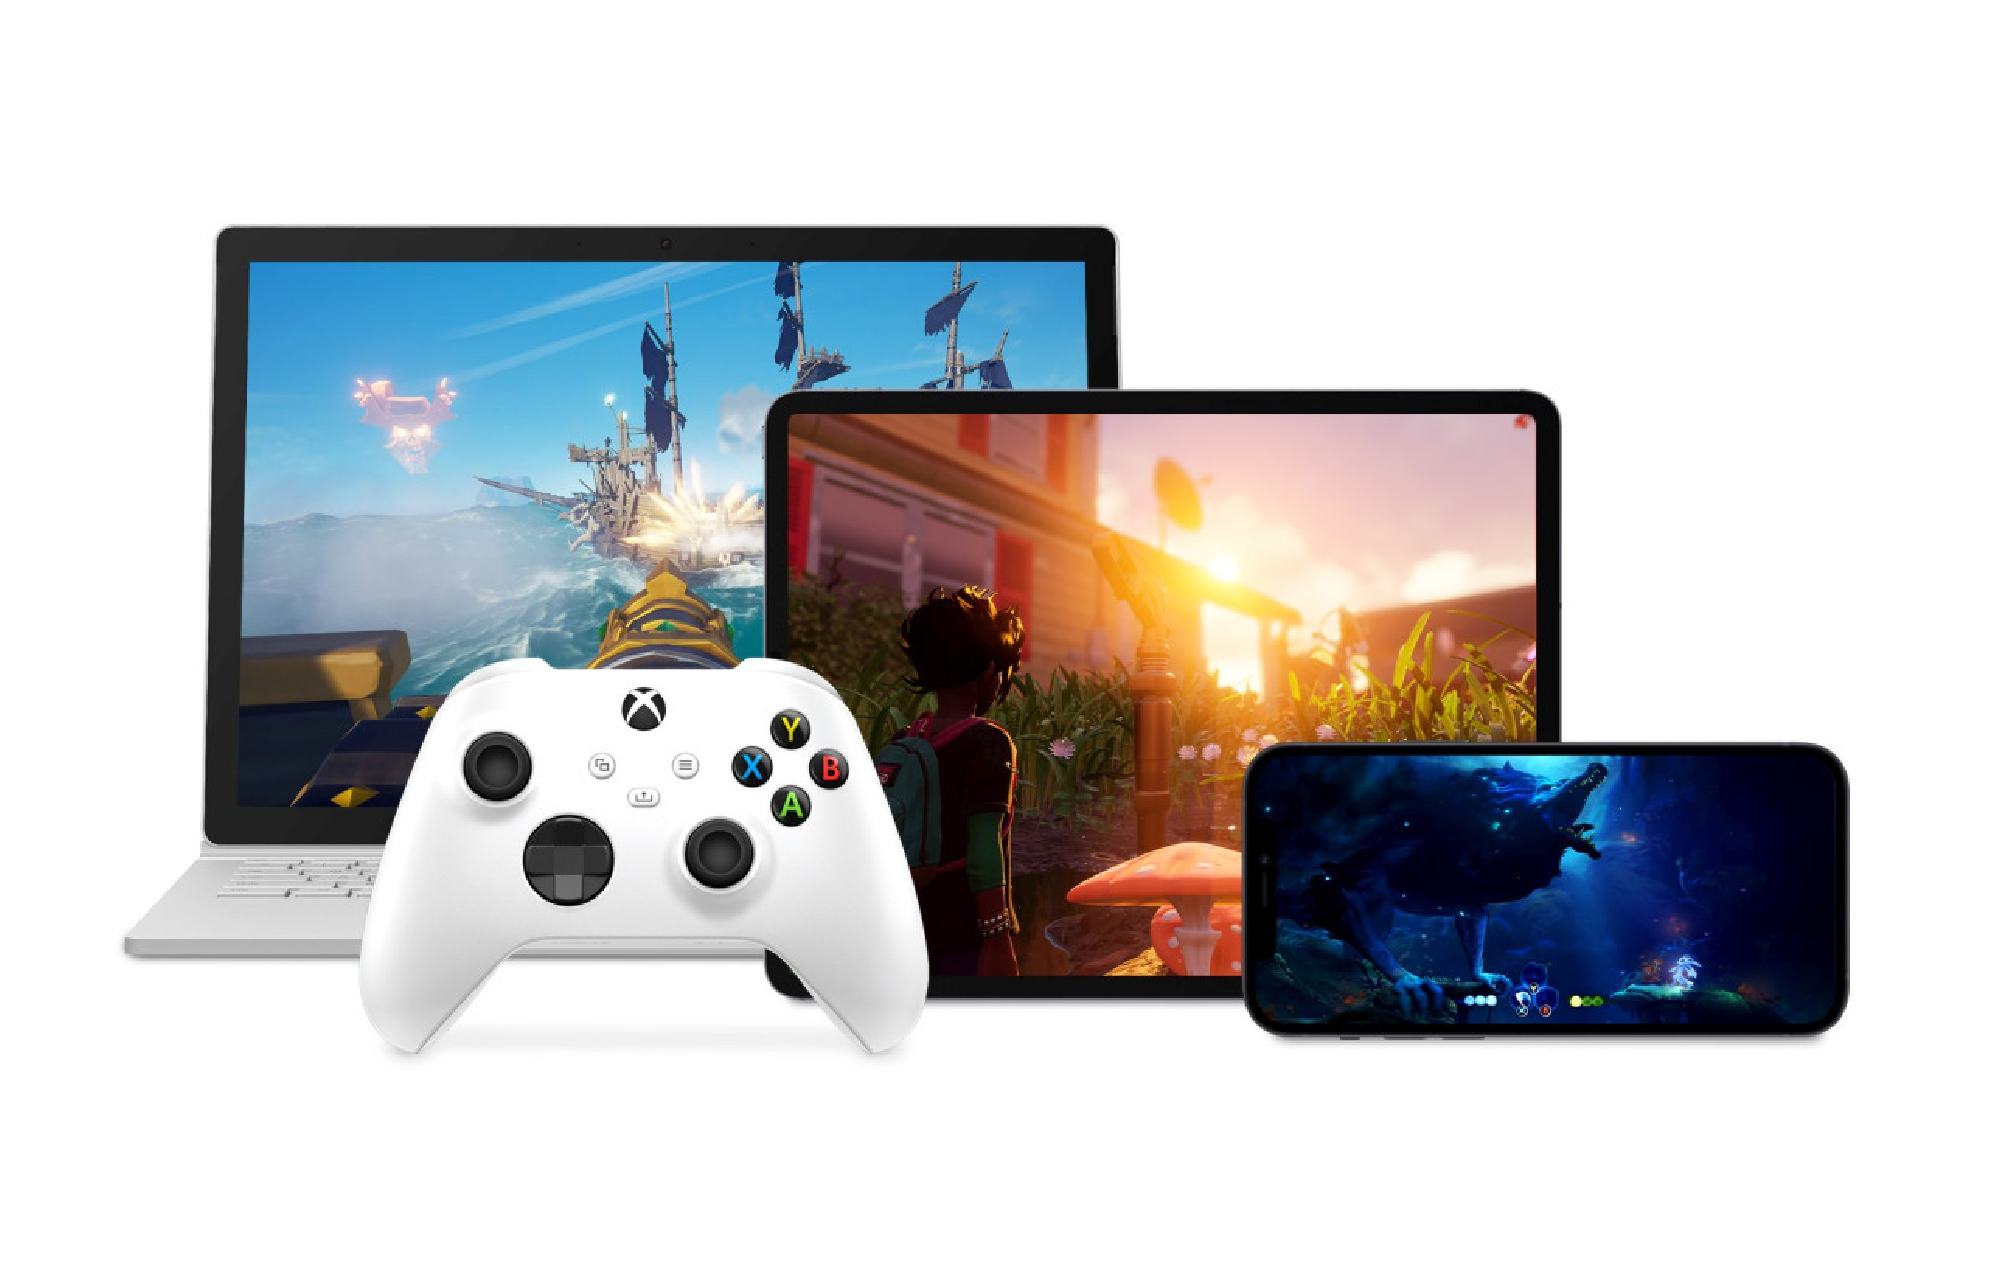 Microsoft Cloud Gaming Controller and iOS Devices